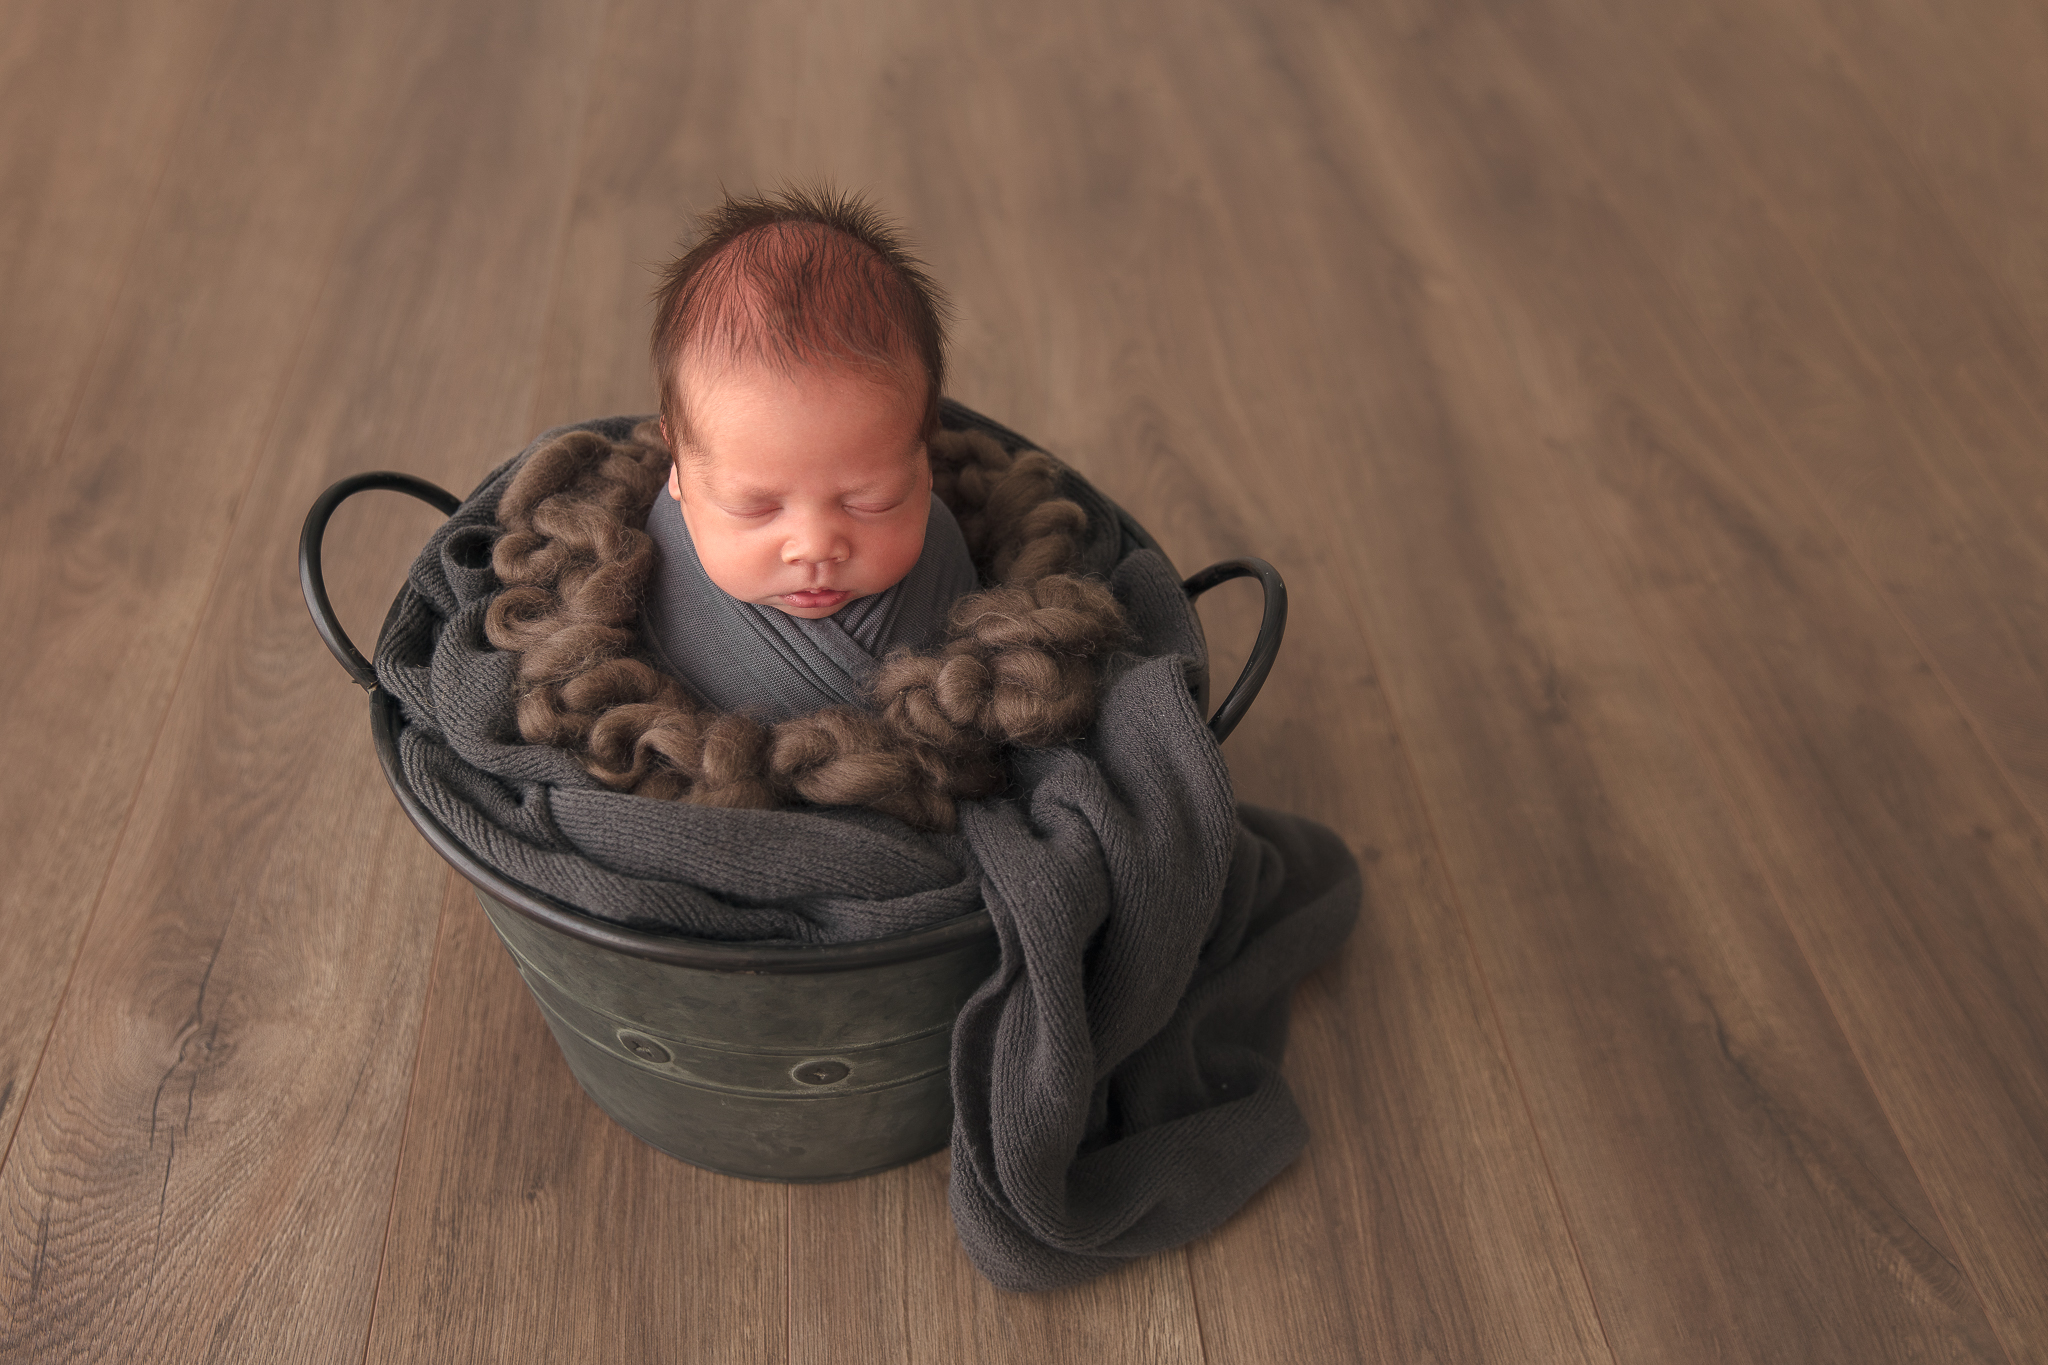 baby-boy-bucket-pose-photography-adelaide-newborn